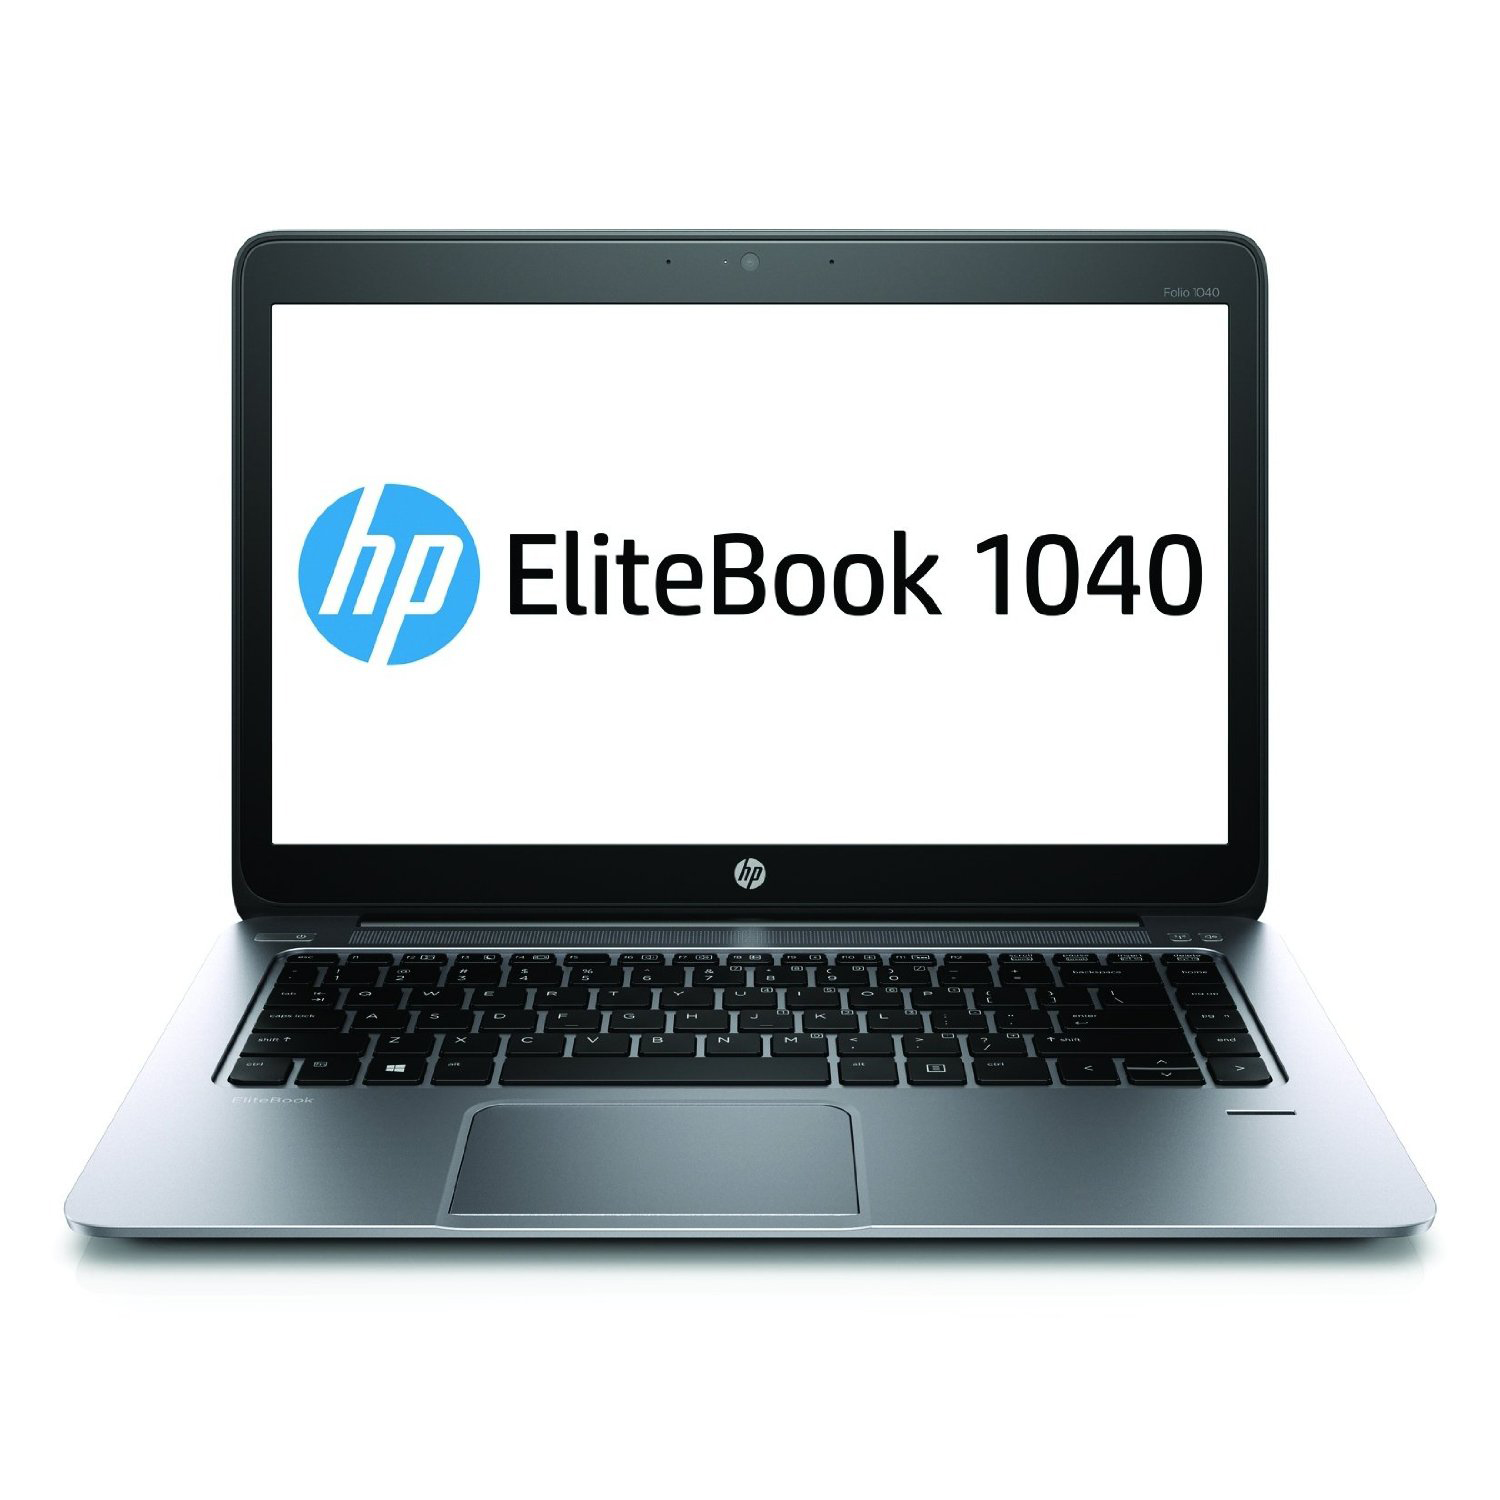 HP Elitebook Folio 1040 G3 Core i7 - 6600U/ RAM 8GB / 256GB SSD / Intel HD Graphics 520/ 14 inch